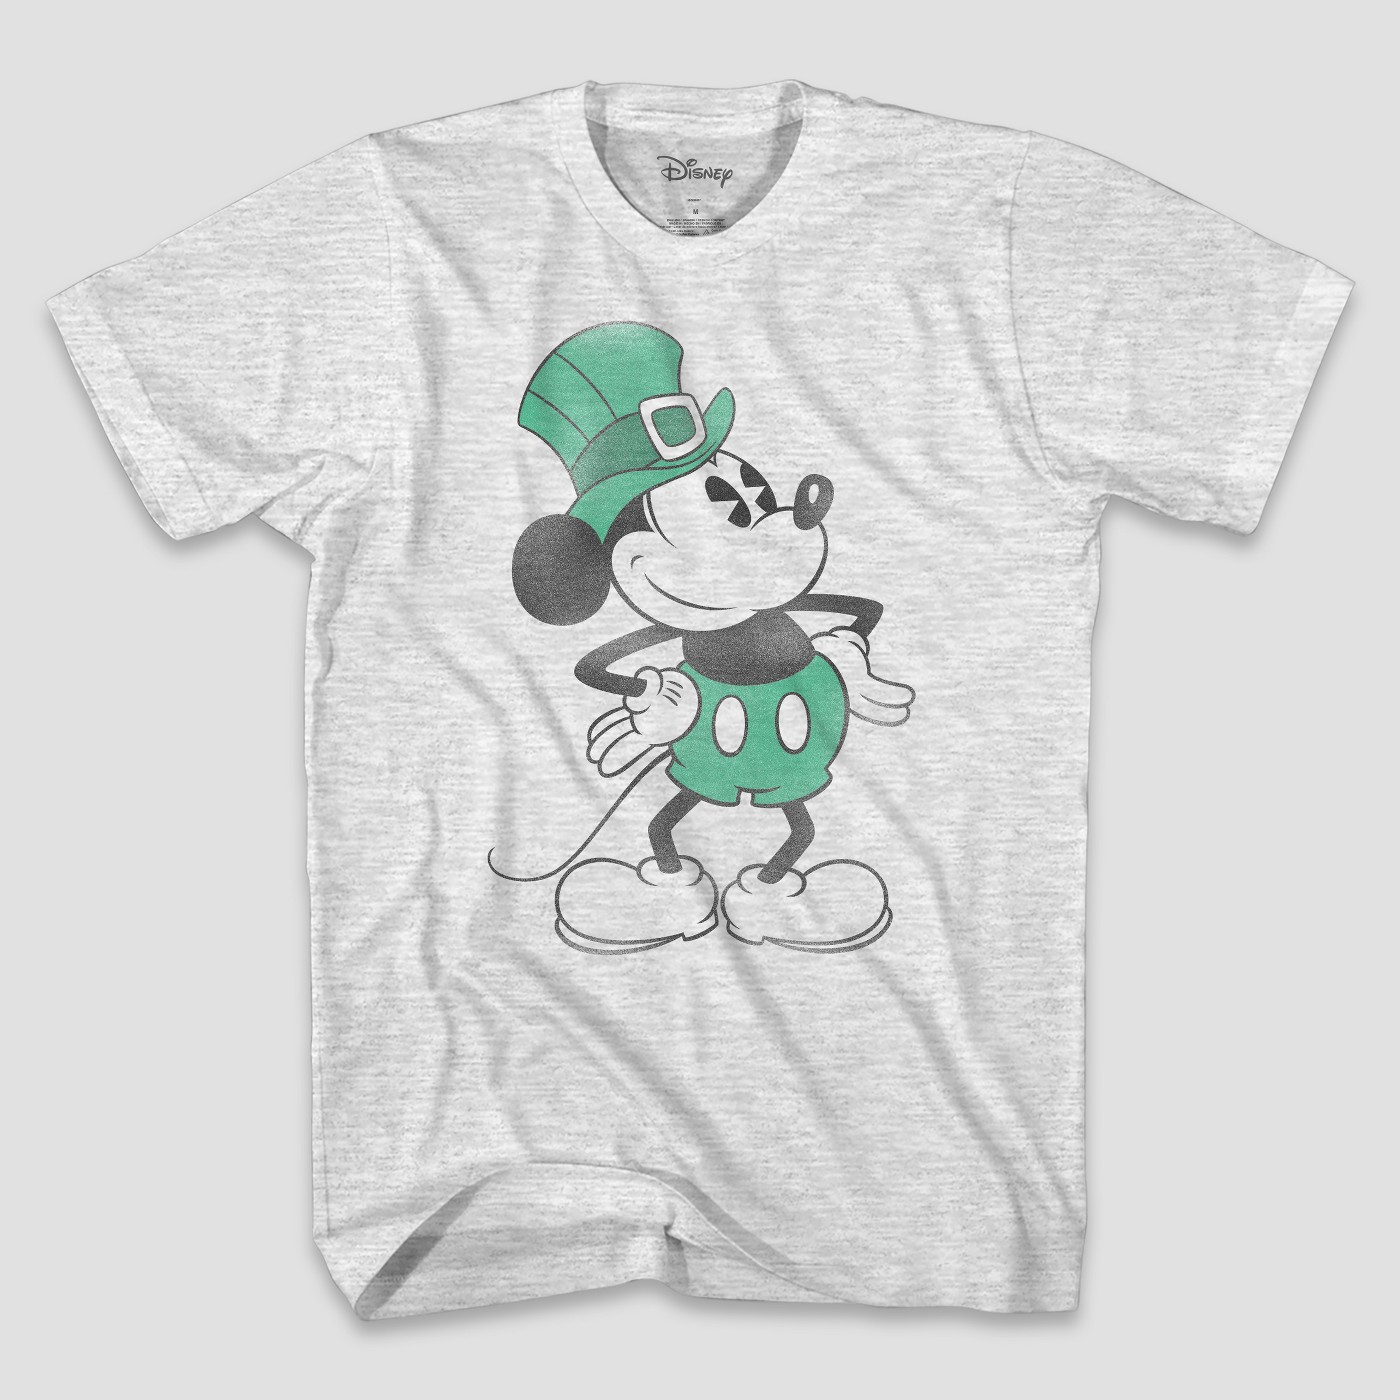 Men's Disney Mickey Mouse Short Sleeve Graphic T-Shirt - Ash - image 1 of 1